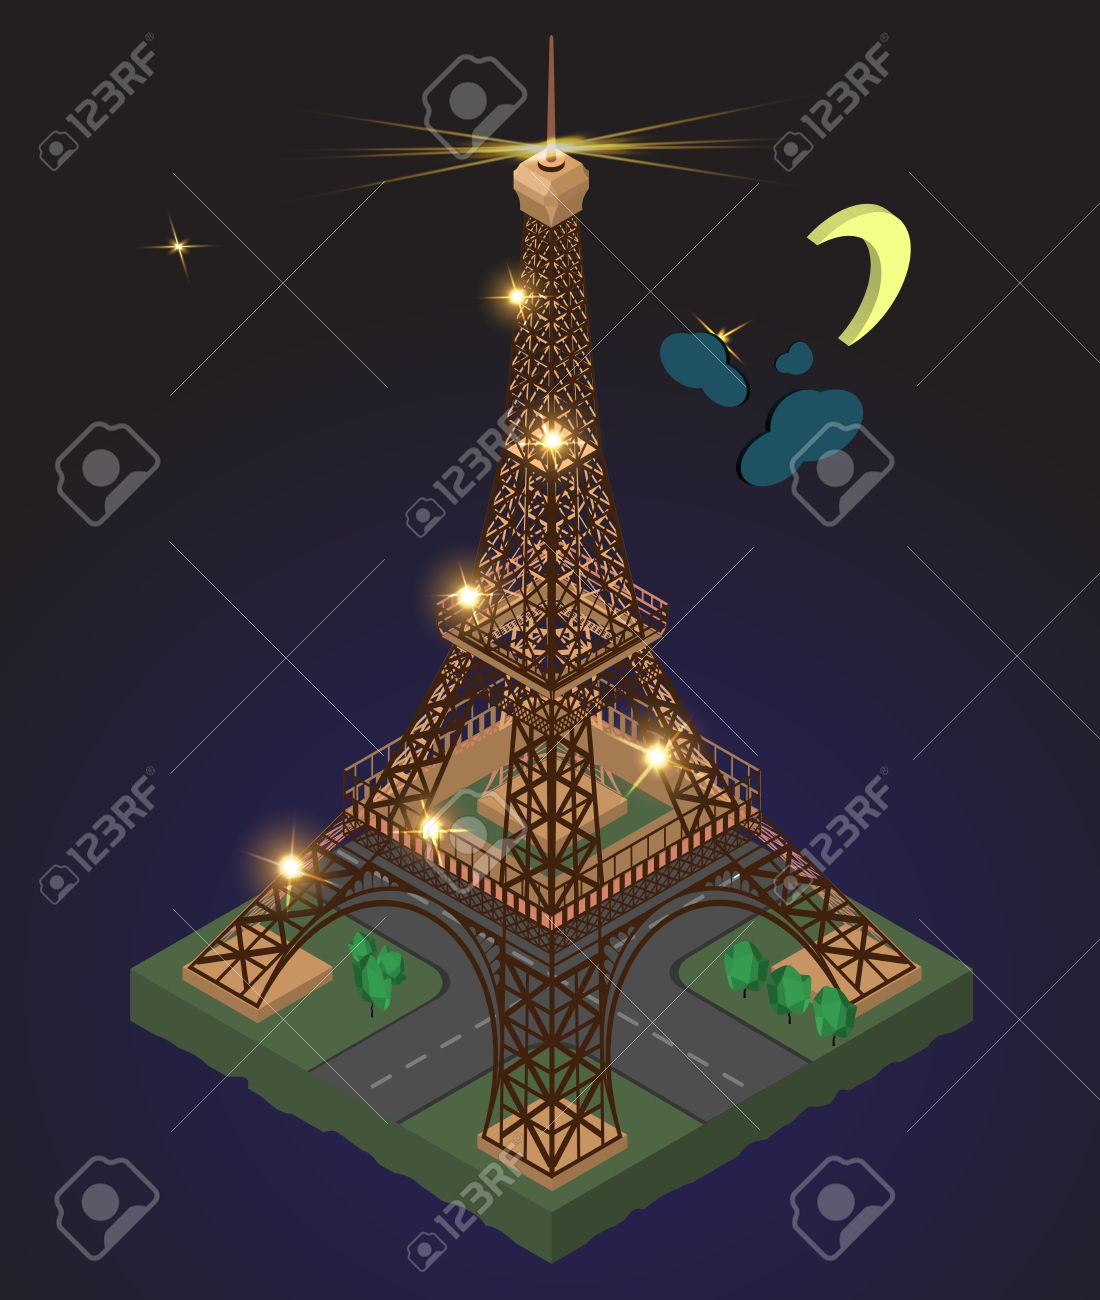 eiffel tower on the background of night sky with stars lights